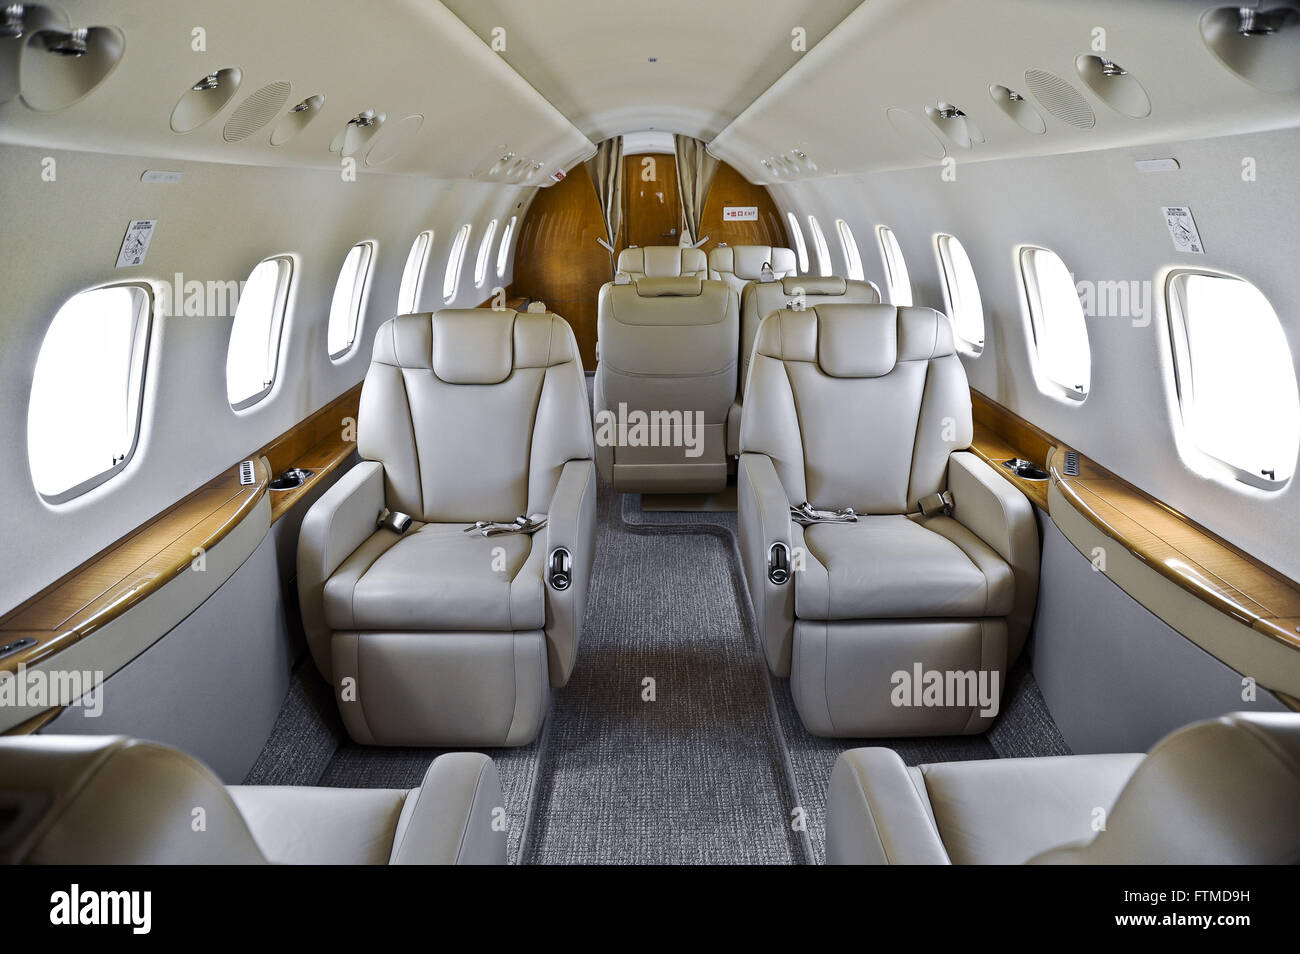 Interior Aircraft Embraer Legacy 650 exported to China - Stock Image